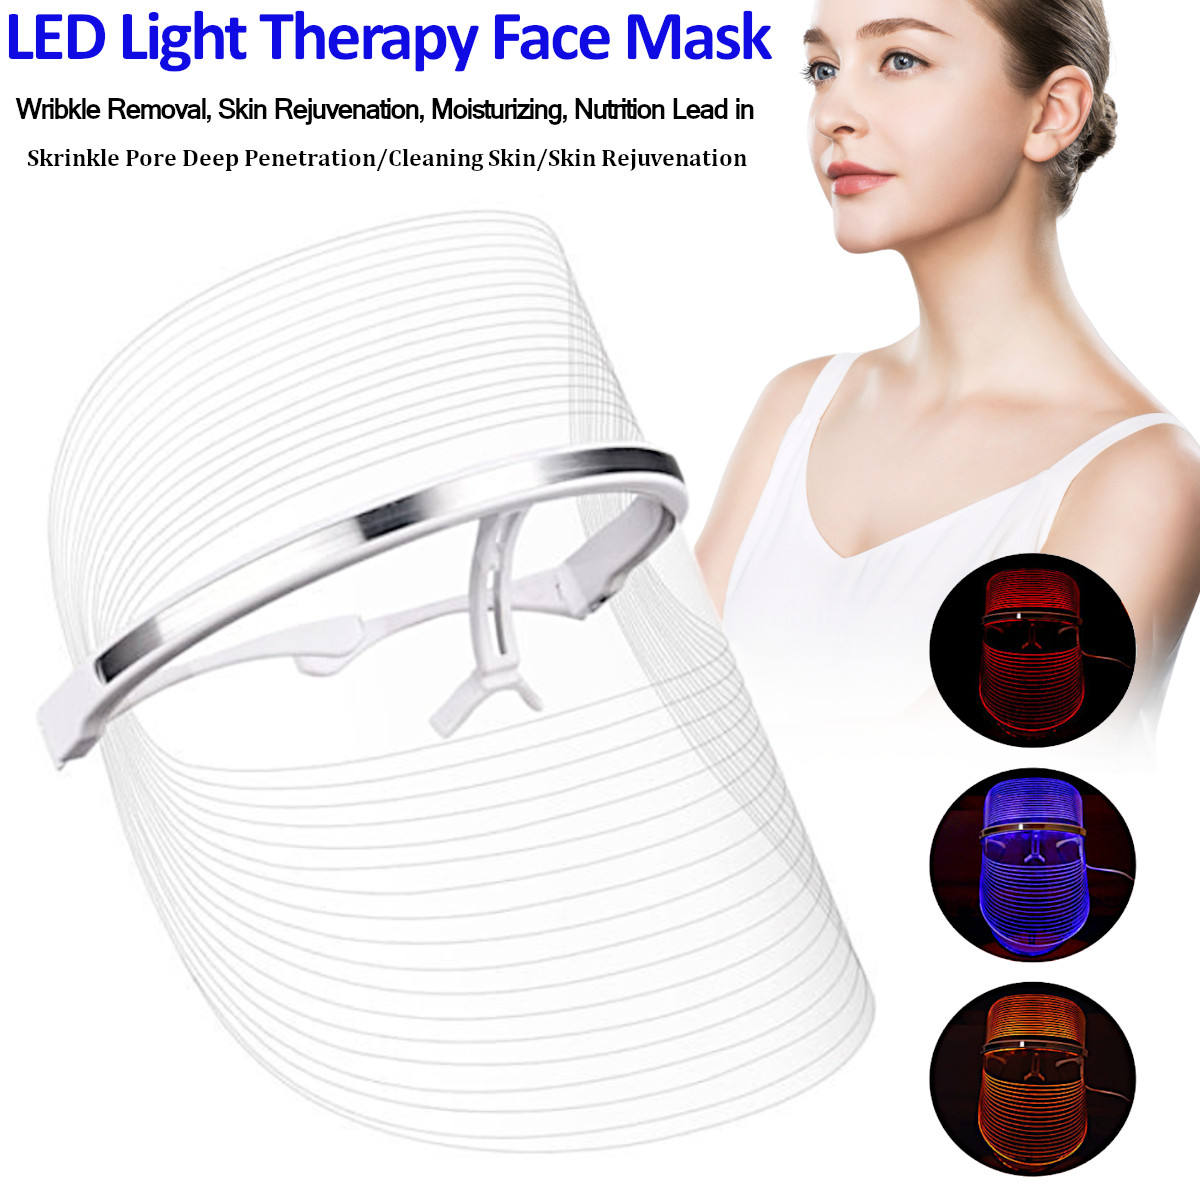 3 Color LED Light Therapy Face Mask Effective Face Treatment Mask LED SPA Device Anti Acne Rejuvenation Wrinkle Removal3 Color LED Light Therapy Face Mask Effective Face Treatment Mask LED SPA Device Anti Acne Rejuvenation Wrinkle Removal